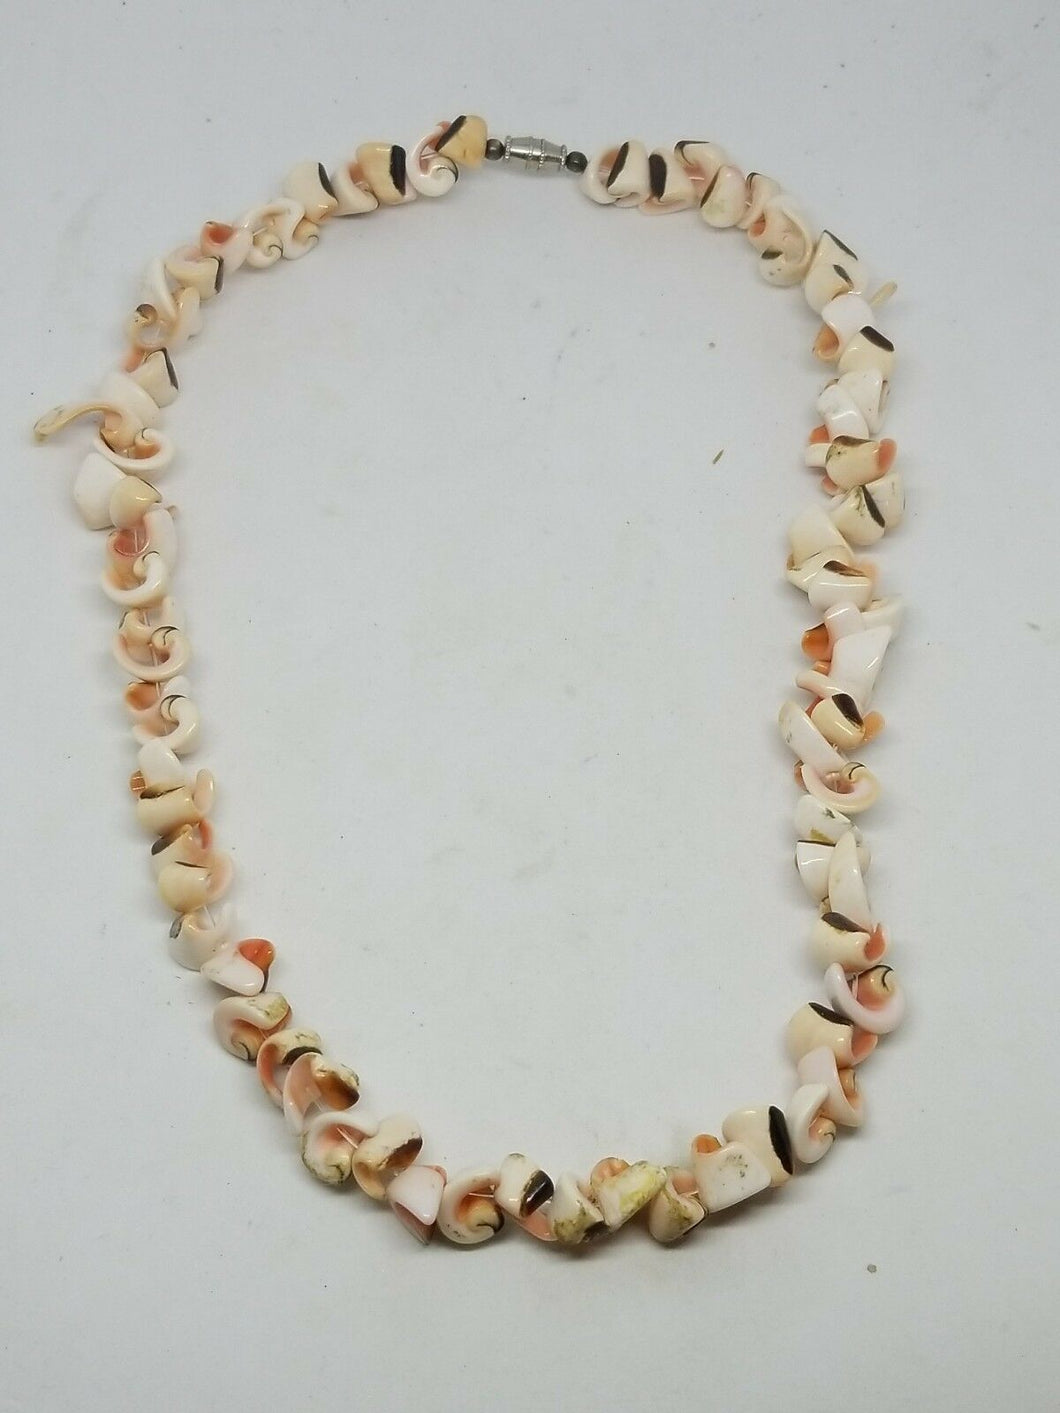 Vintage Natural Pinks Sea Shell Necklace Costume Jewelry